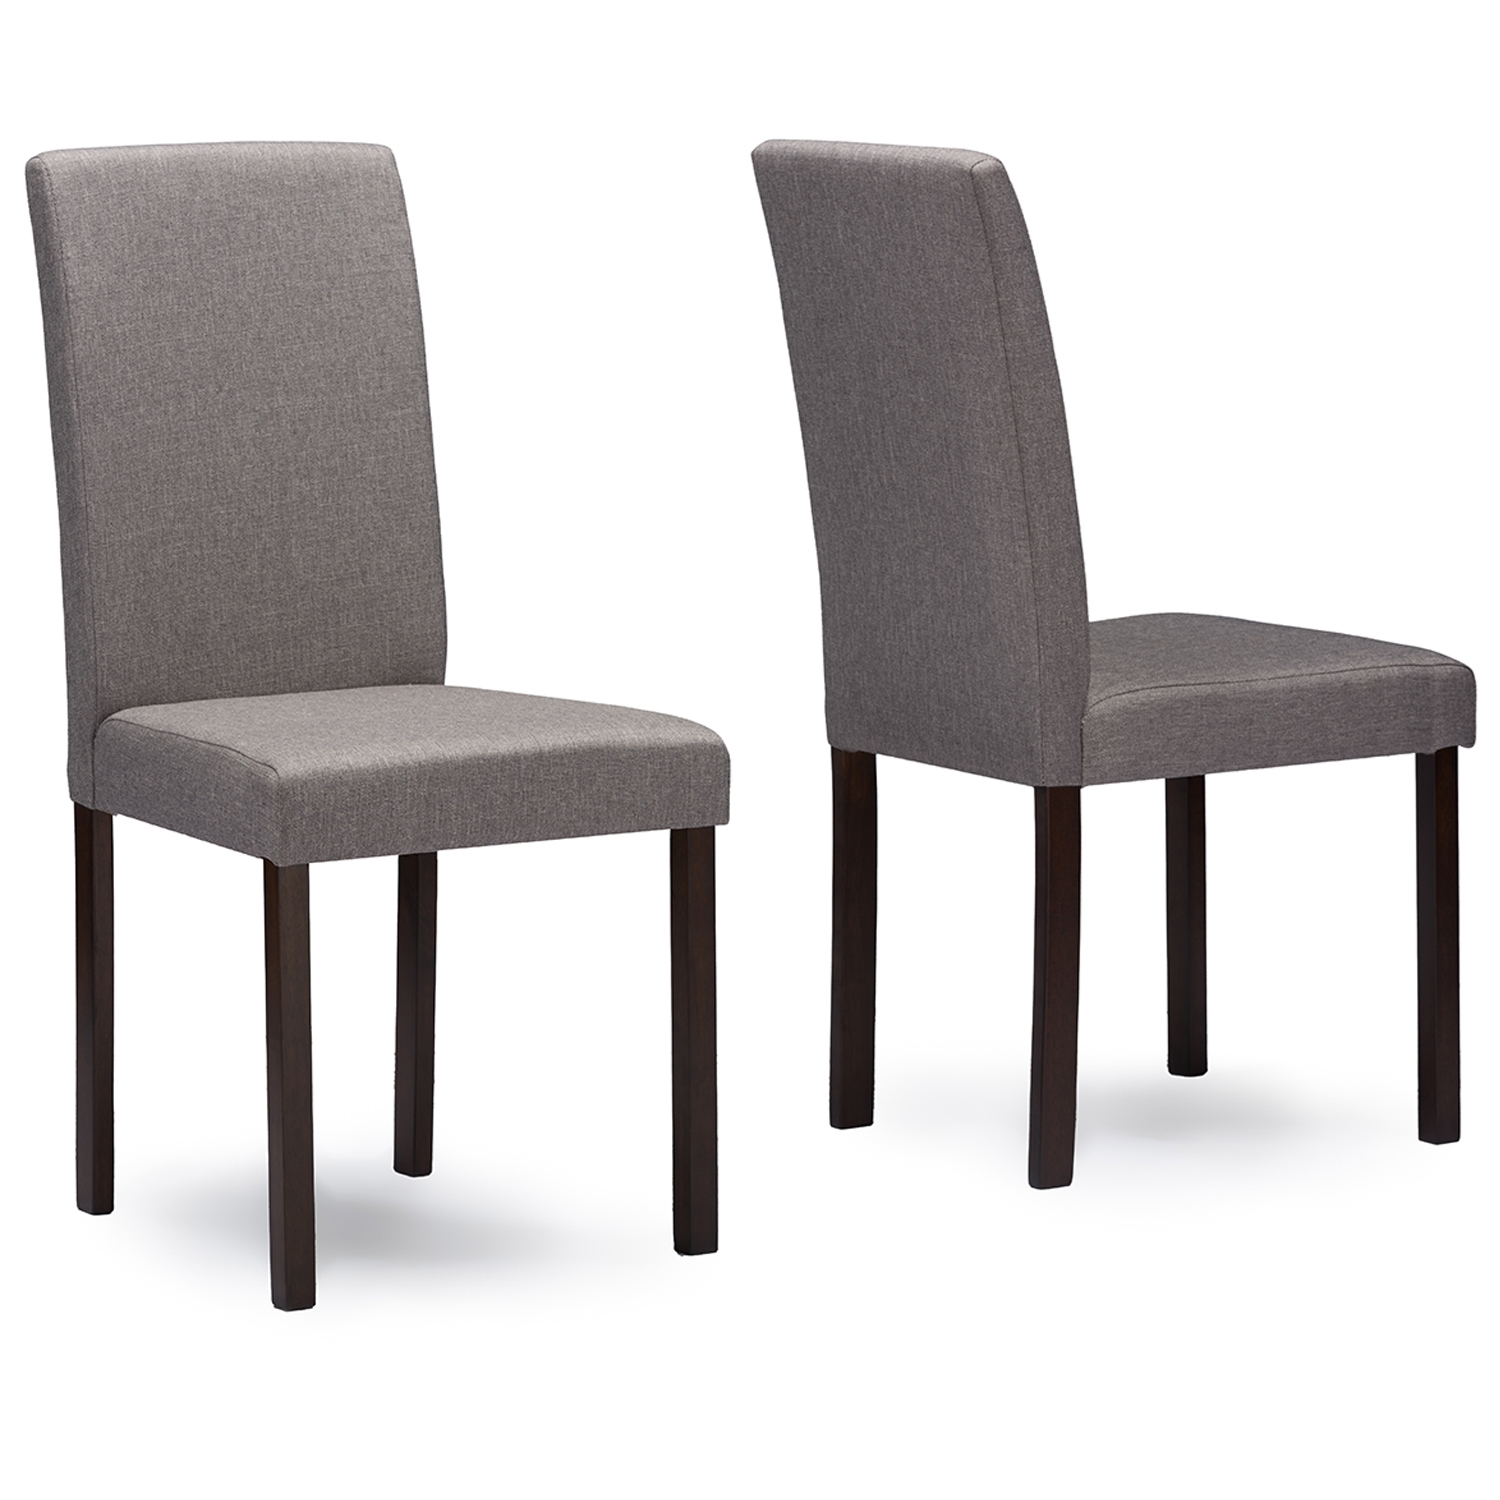 Baxton Studio Andrew Contemporary Espresso Wood Grey Fabric Dining Chair    Andrew Dining Chair Grey ...